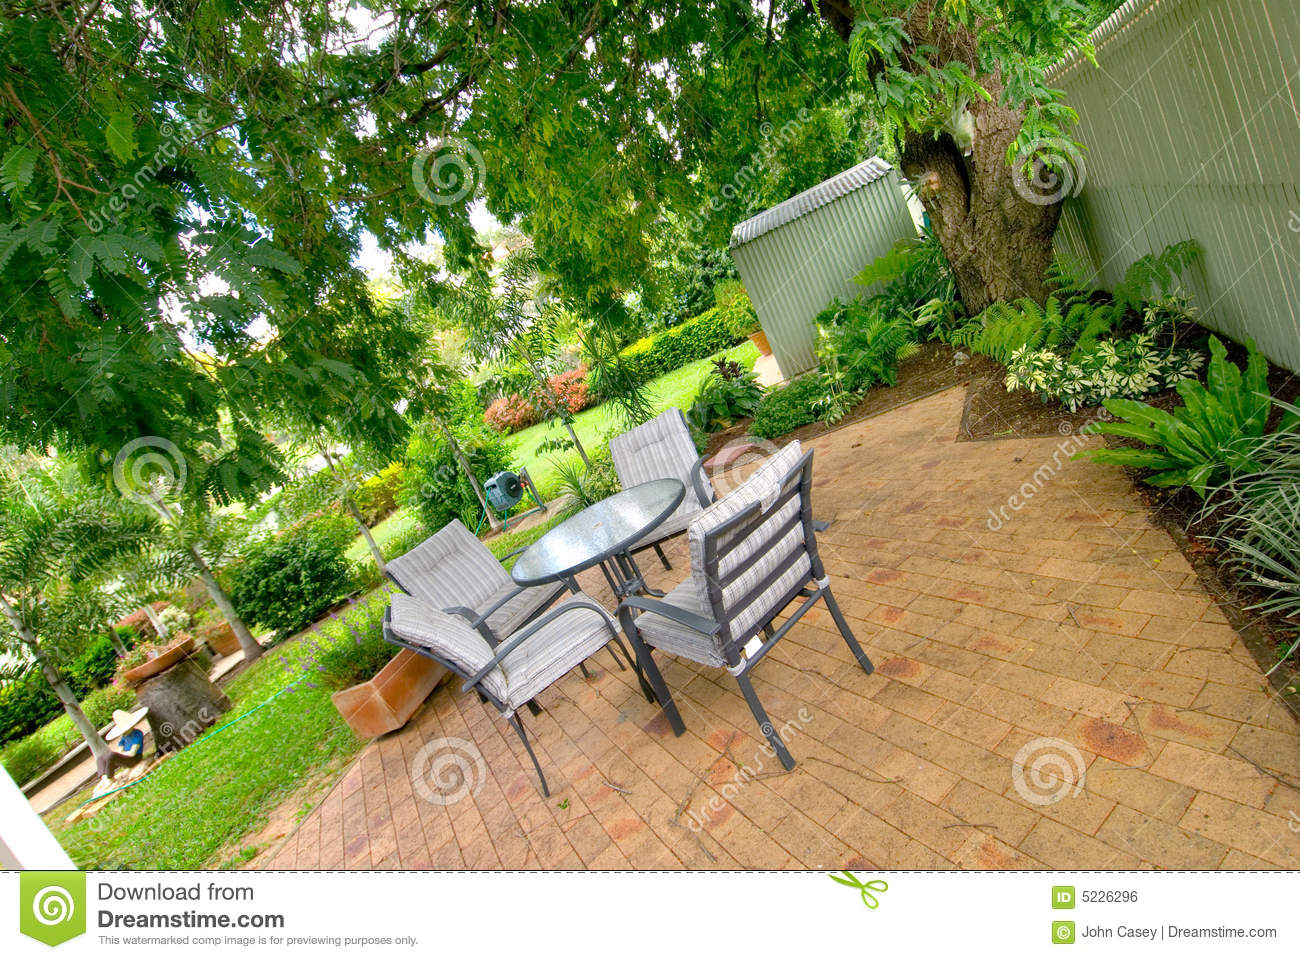 Landscaped Gardens landscaped gardens and setting royalty free stock image - image